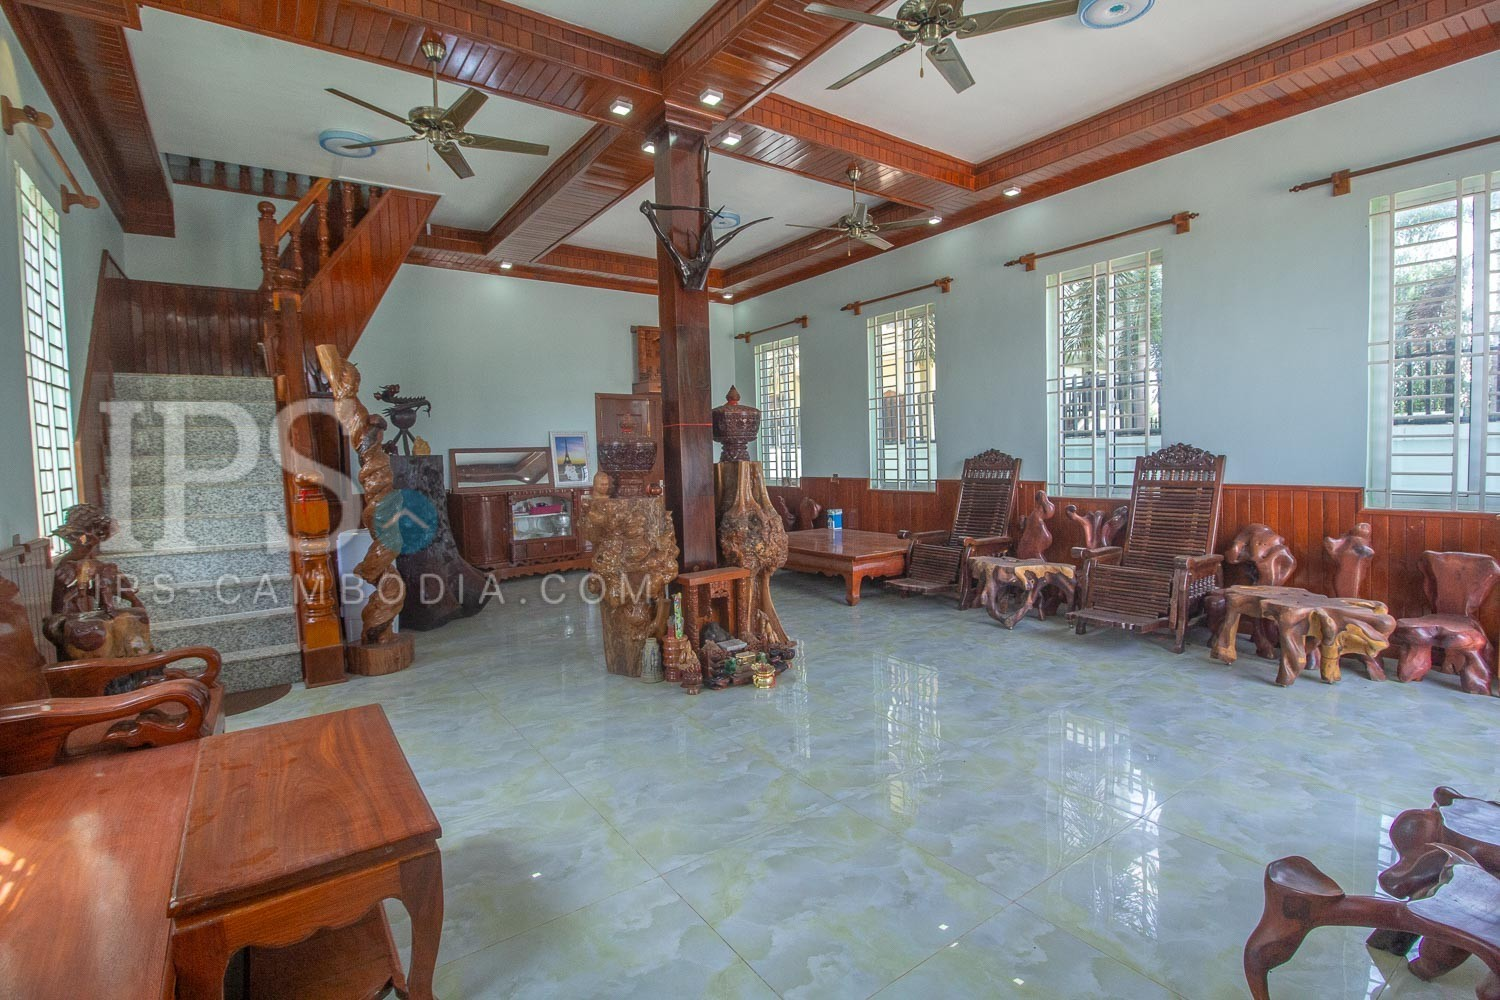 3 Bedroom House For Rent - Sala Kamreuk, Siem Reap